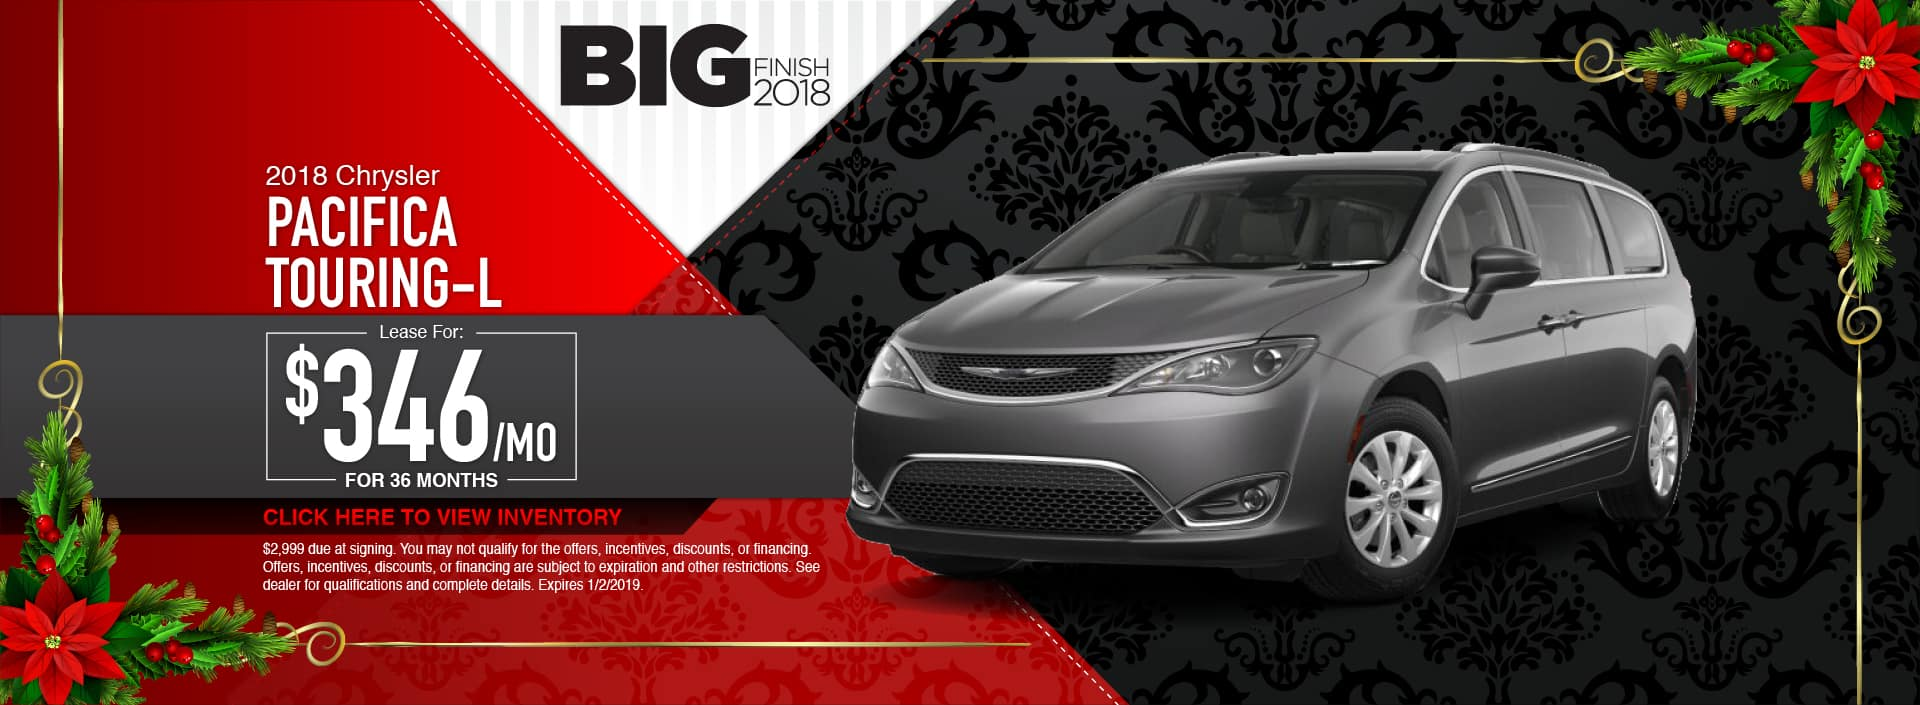 2018 Chrysler Pacifica Touring-L Lease Special at Waseca Chrysler in Waseca, MN